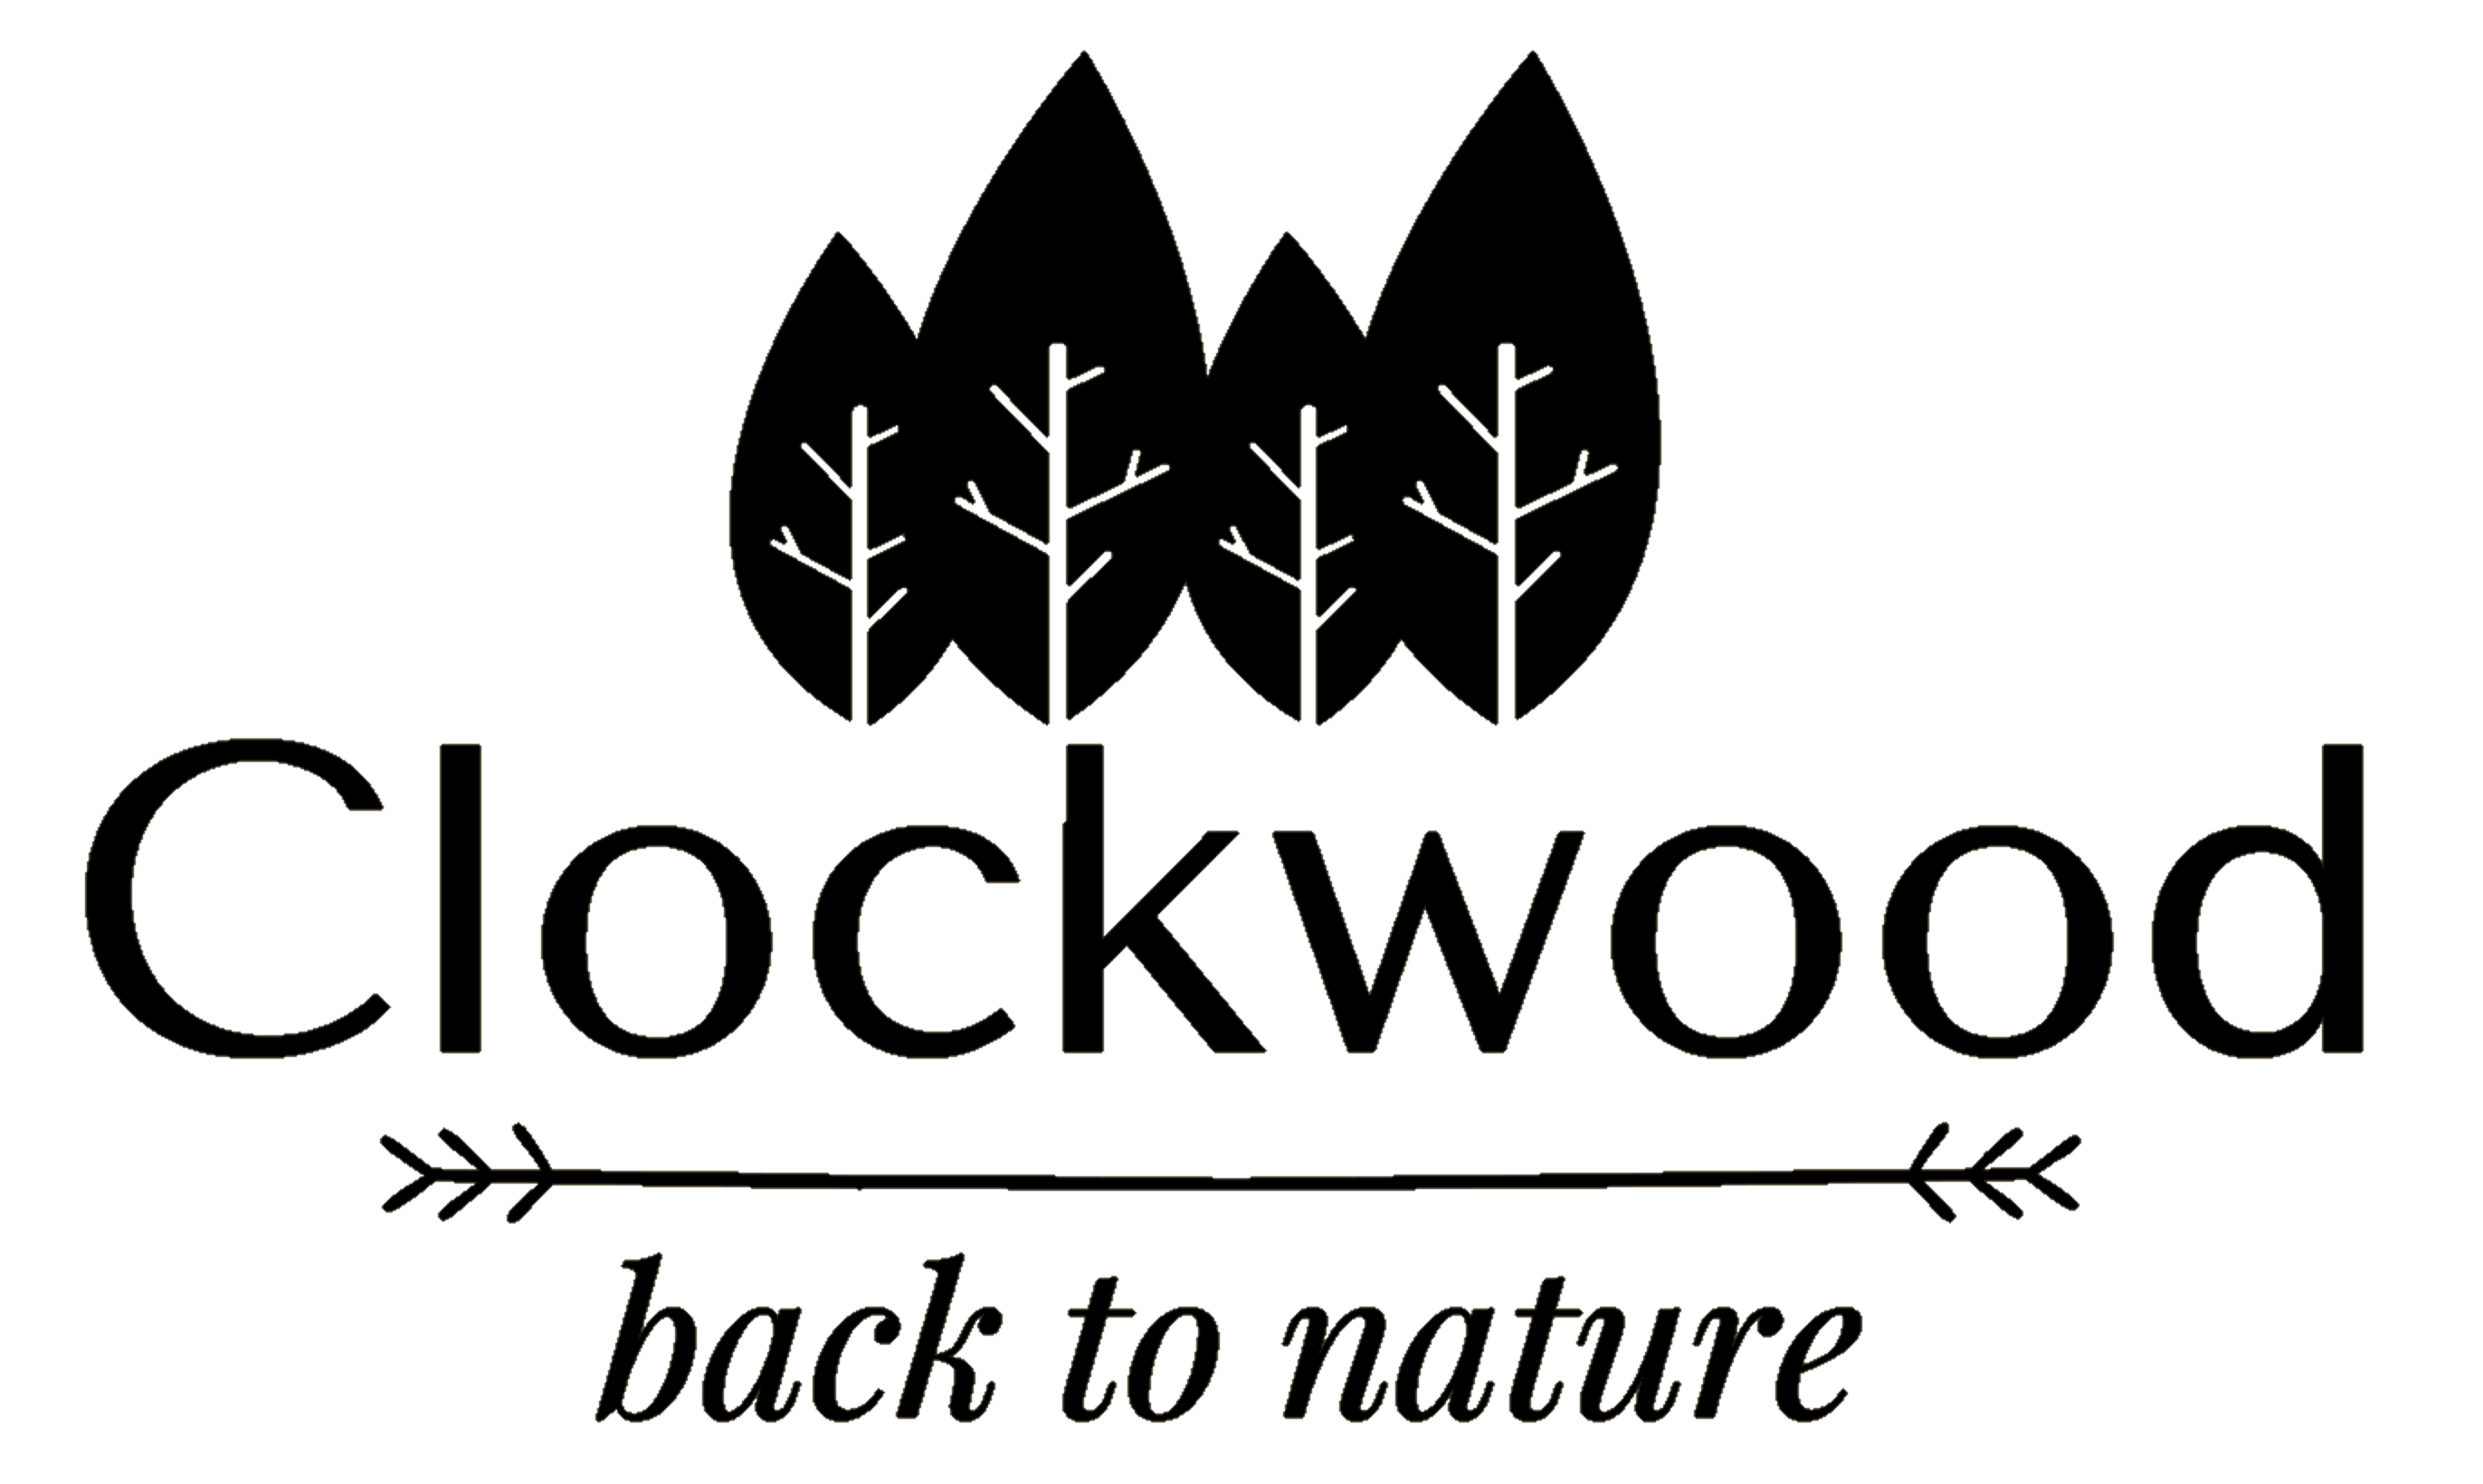 Clockwood Partnerprogramm